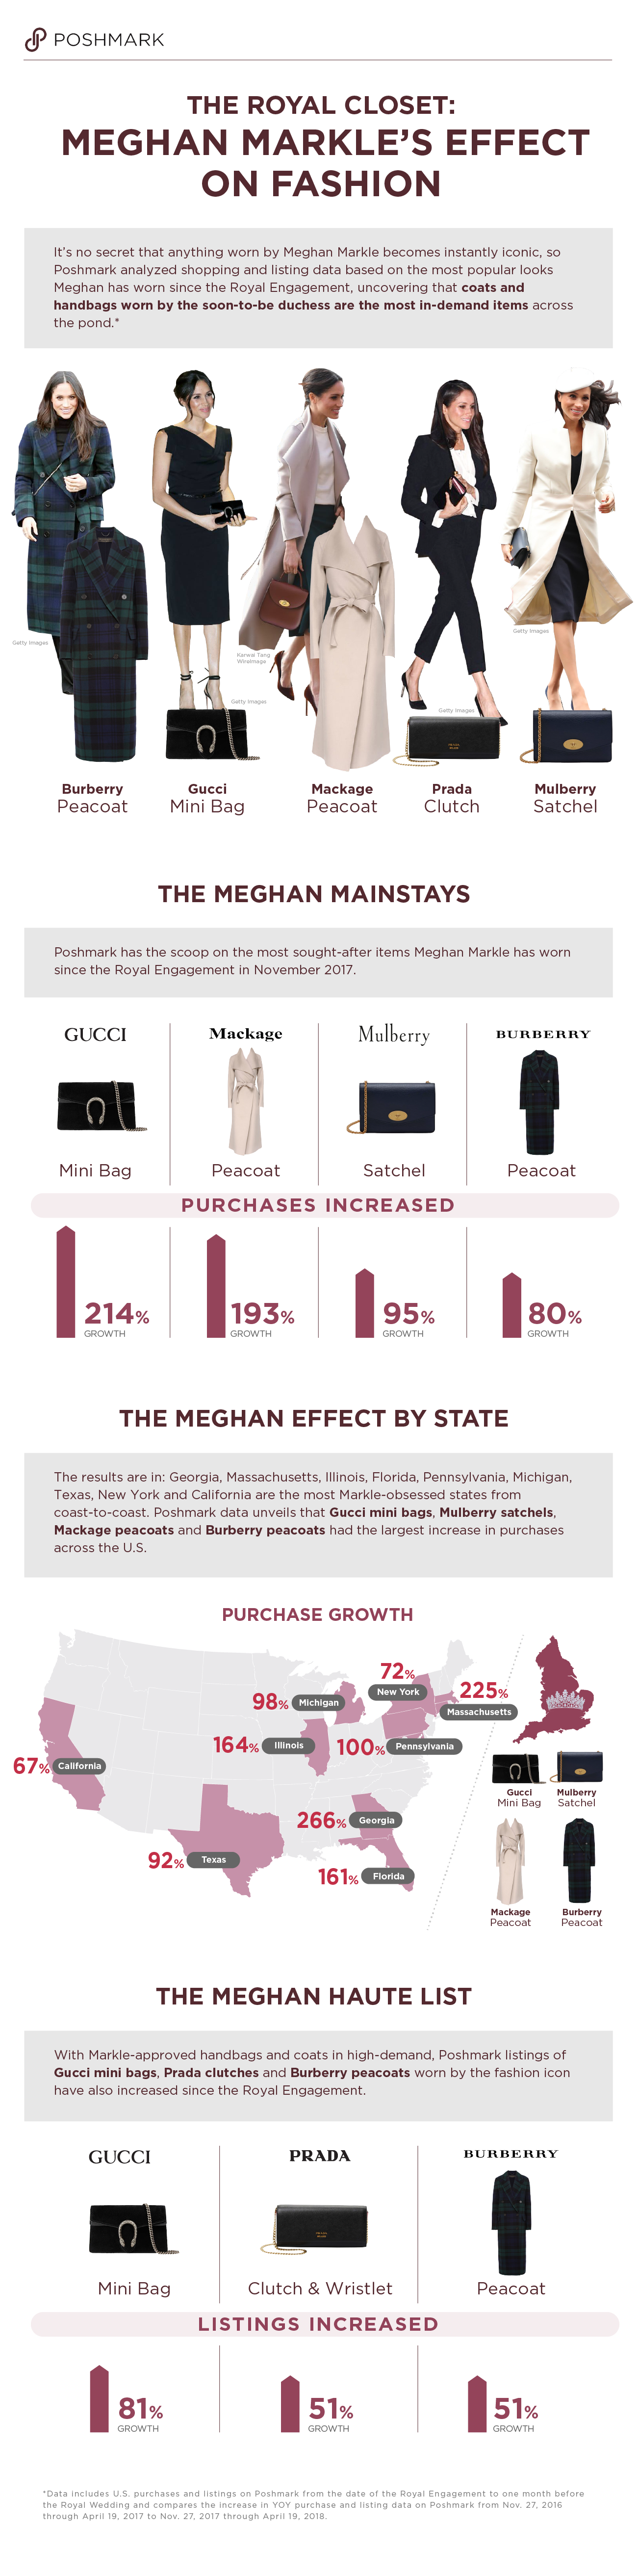 The Meghan Markle Effect On Fashion A Report By Poshmark